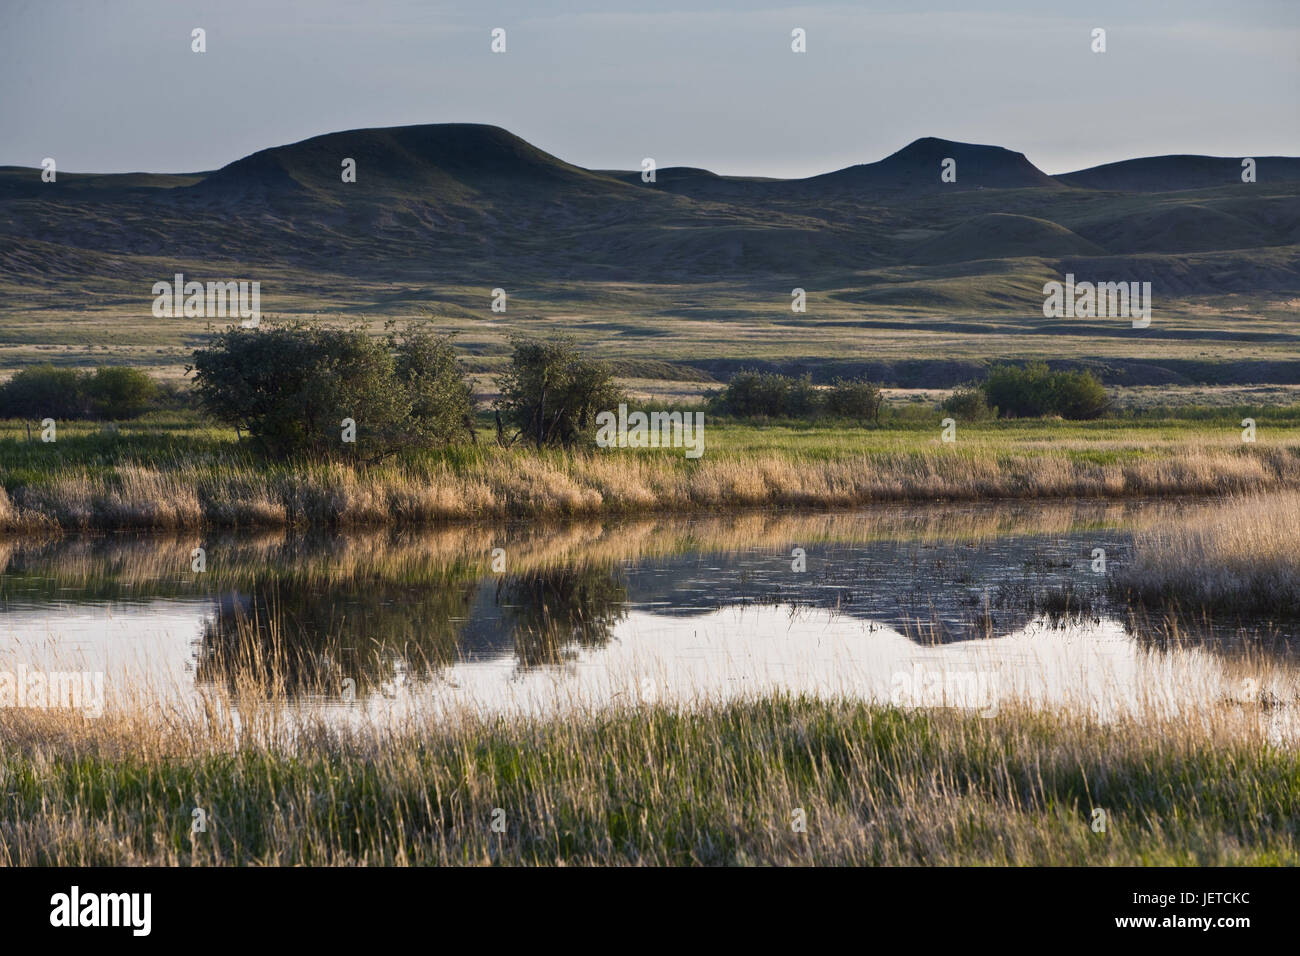 Canada, Saskatchewan, Grass's country Nationwide park, west block, flux Frenchman, valley, scenery, - Stock Image